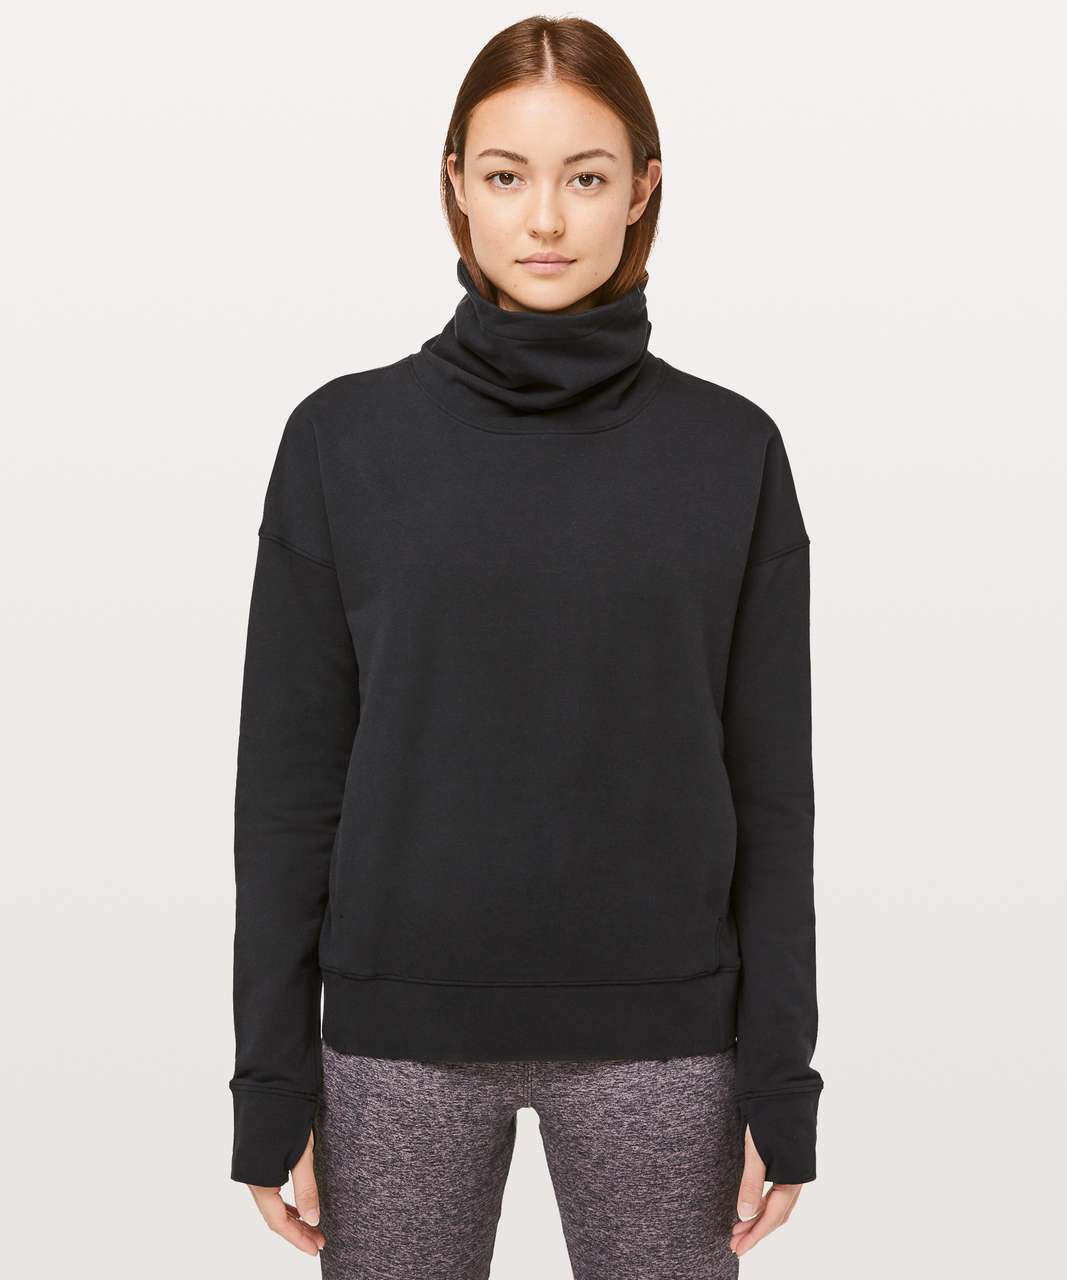 Lululemon Go Forward Pullover - Black